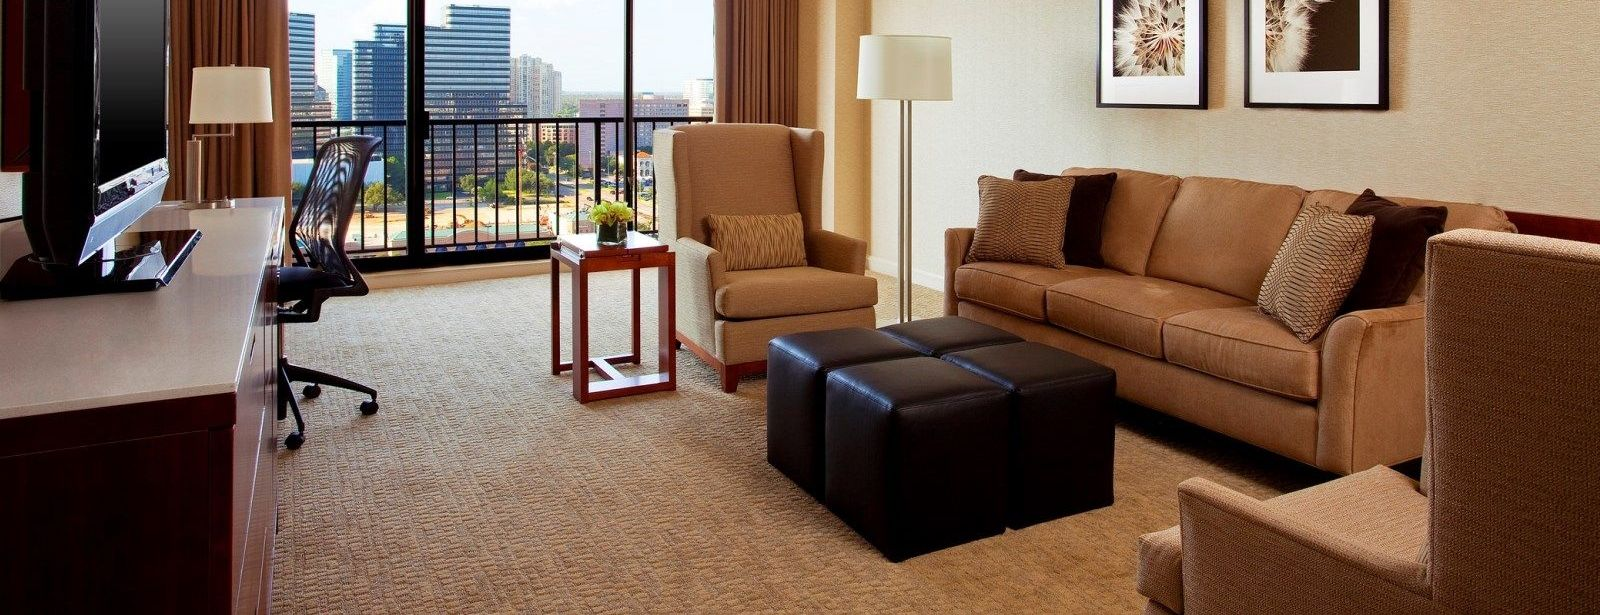 Hotel rooms in Houston - The Westin Oaks Houston at the Galleria